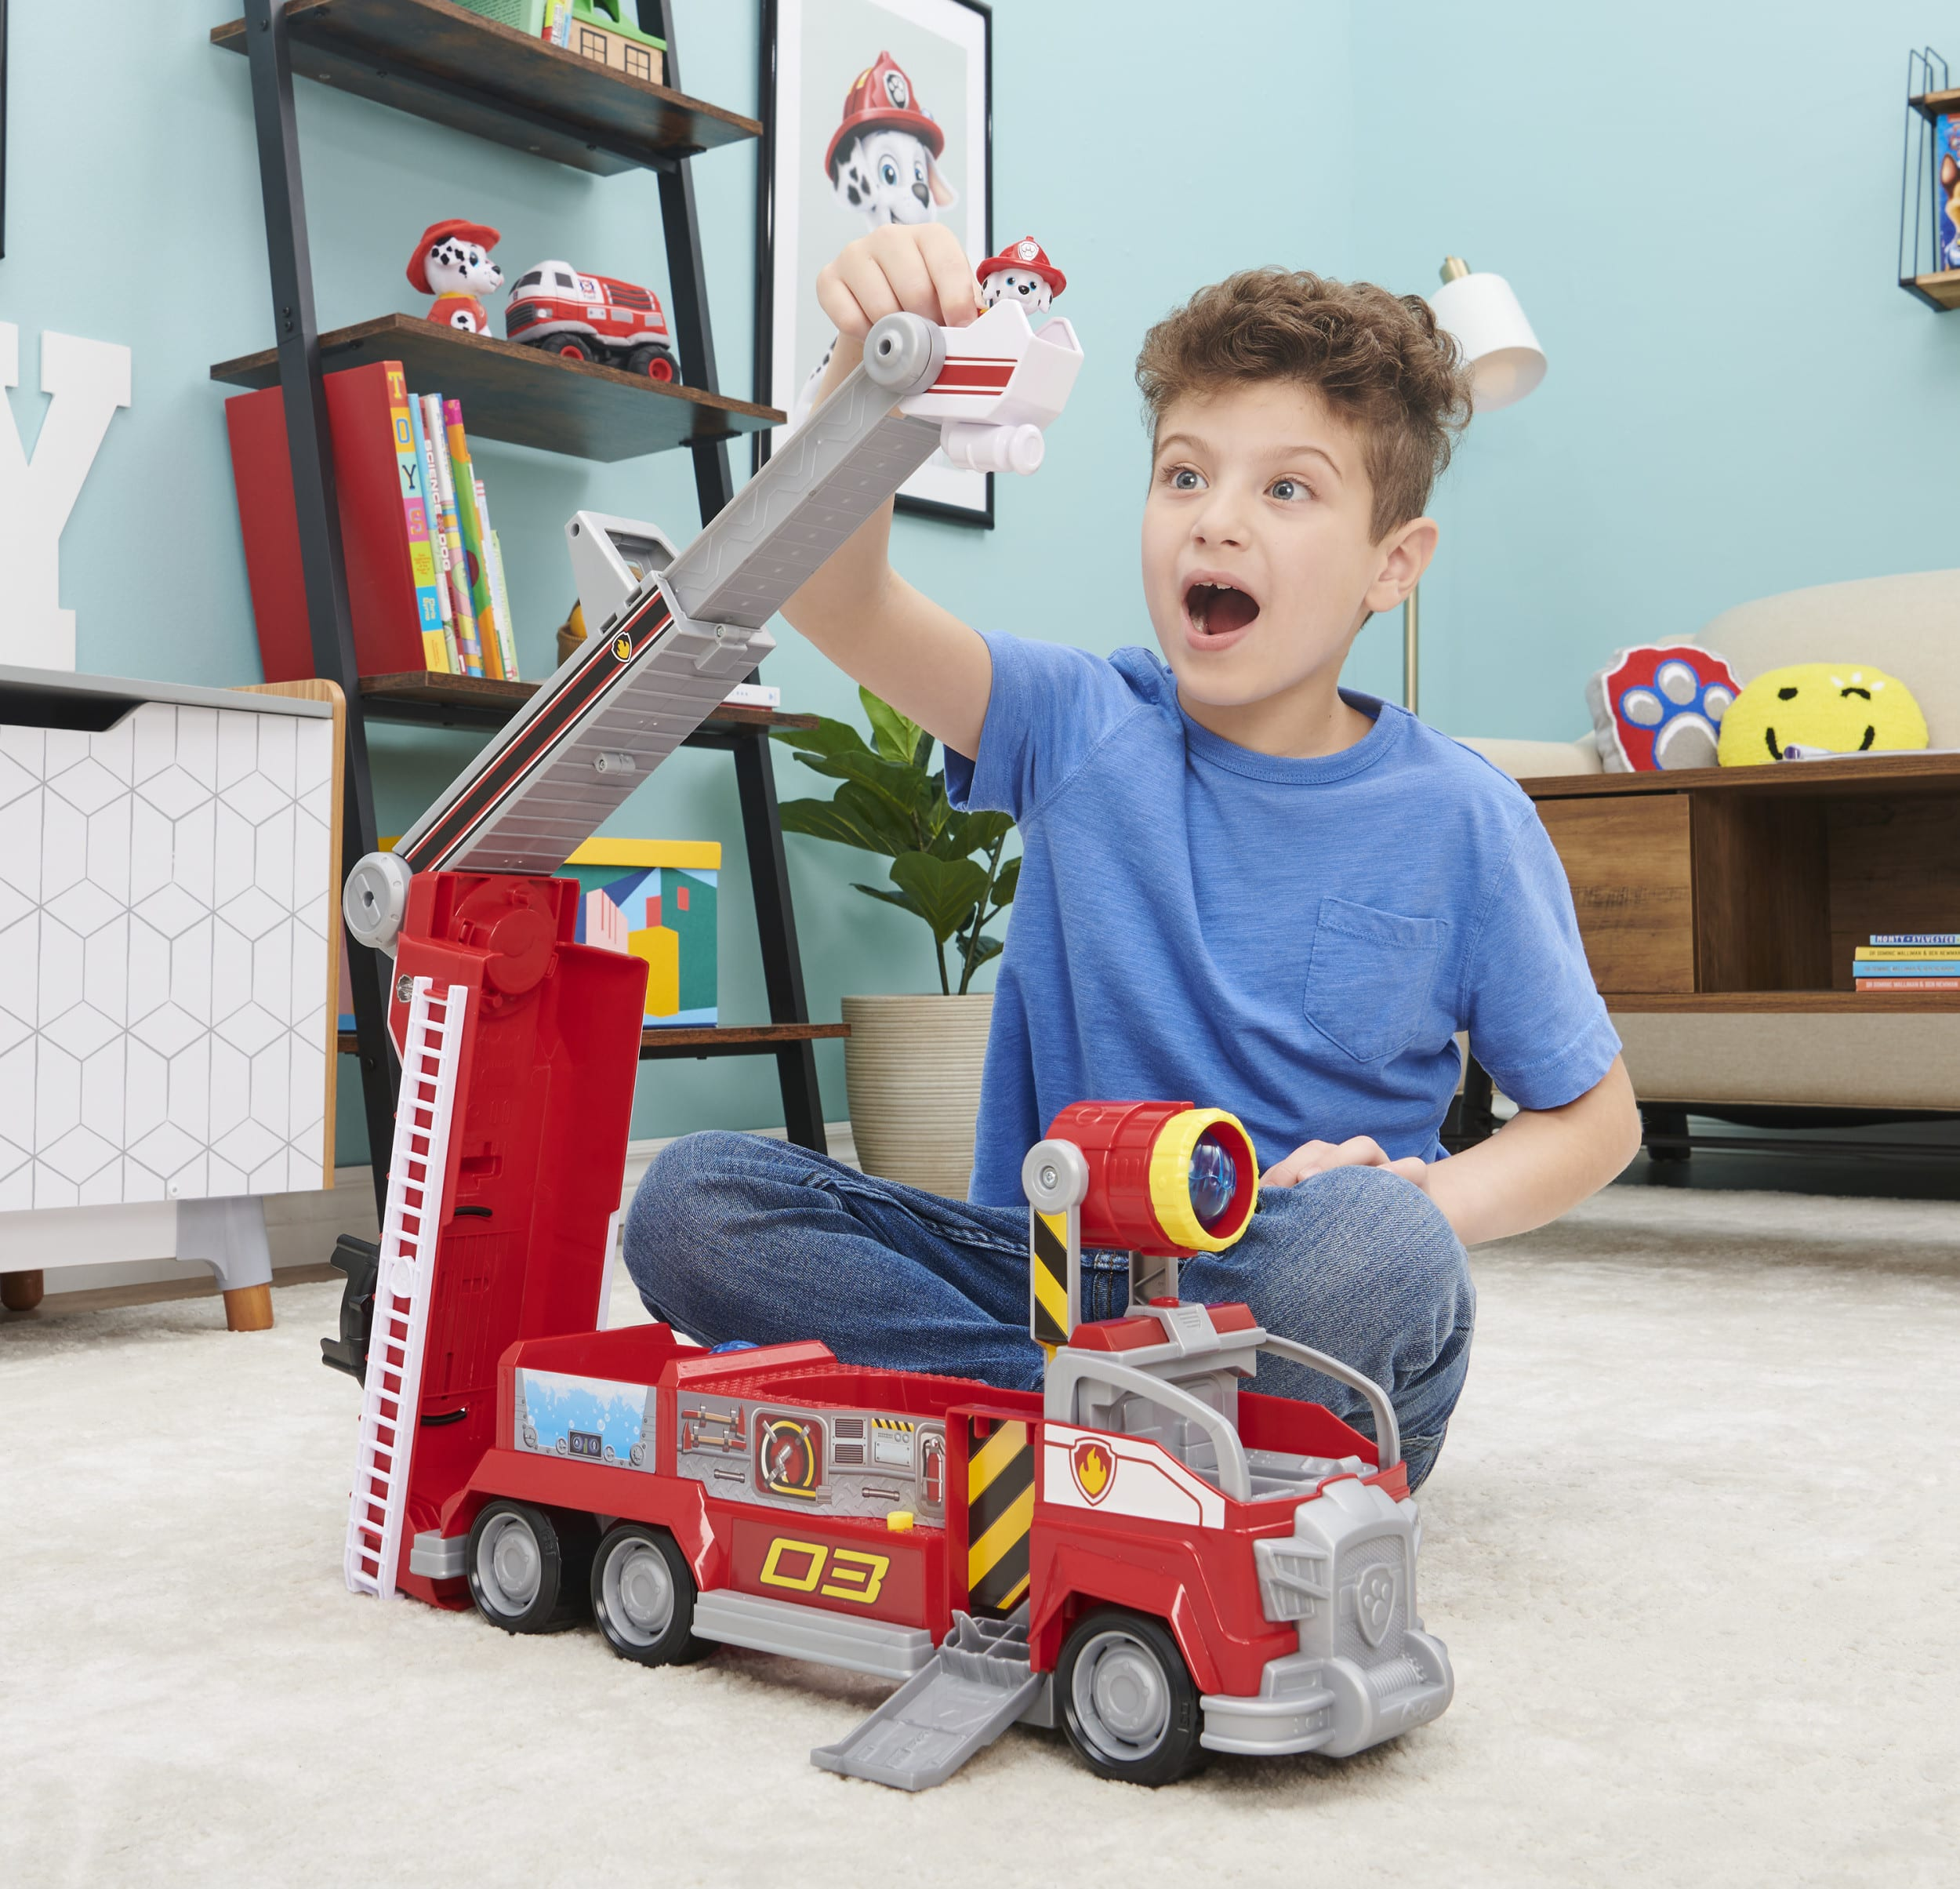 Discover Spin Master Ltd's PAW Patrol: The Movie firetruck at Walmart.